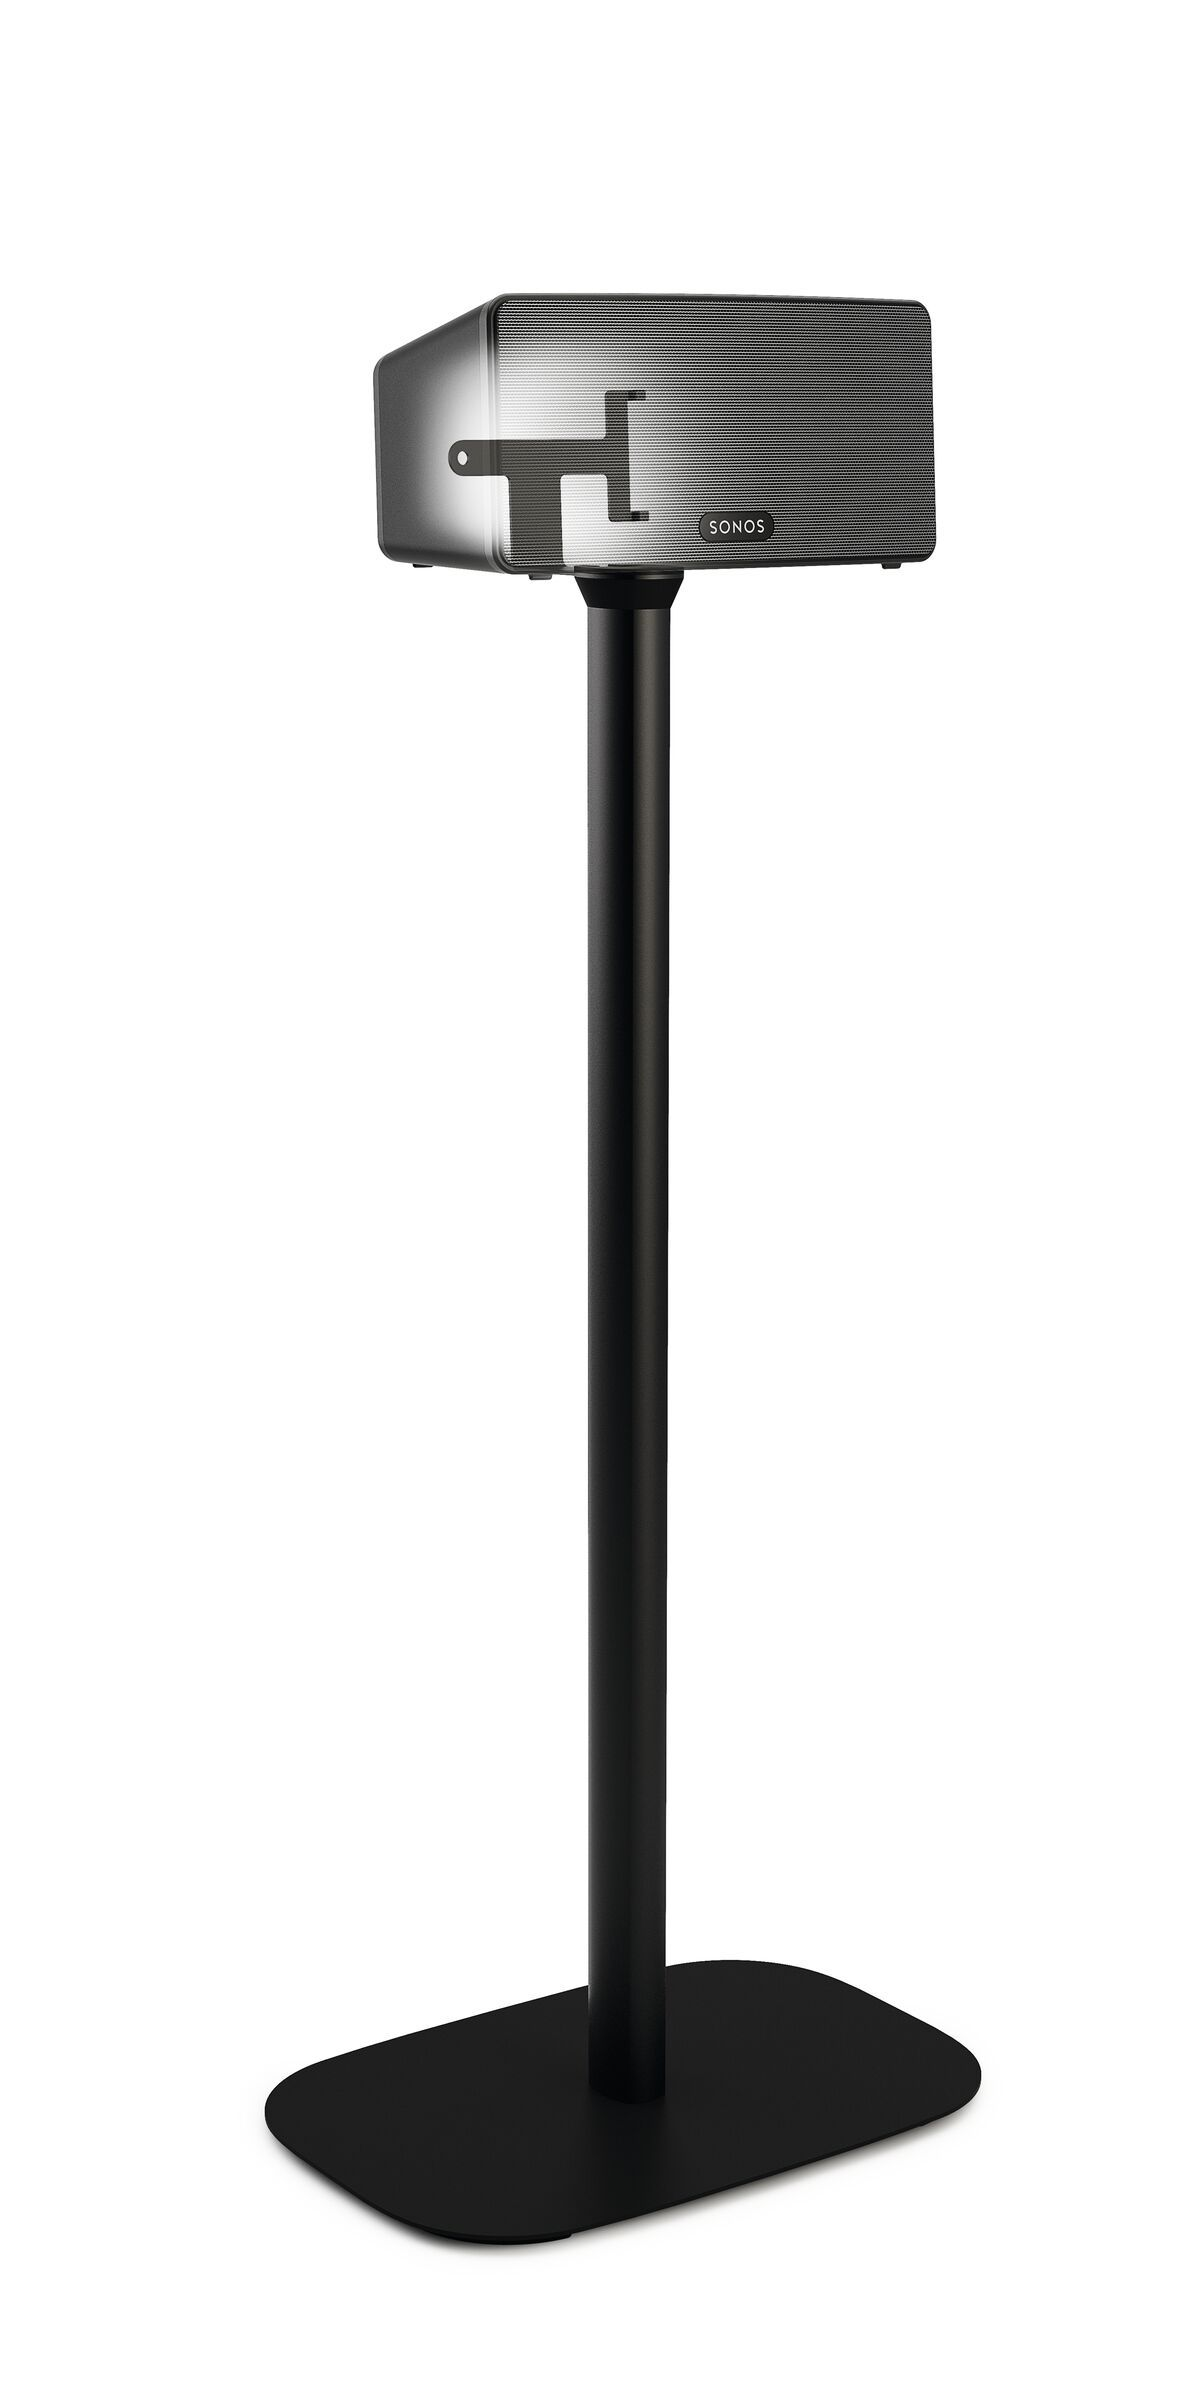 Vogel's SOUND 4303 Speaker Stand for SONOS PLAY:3 (black) - Application